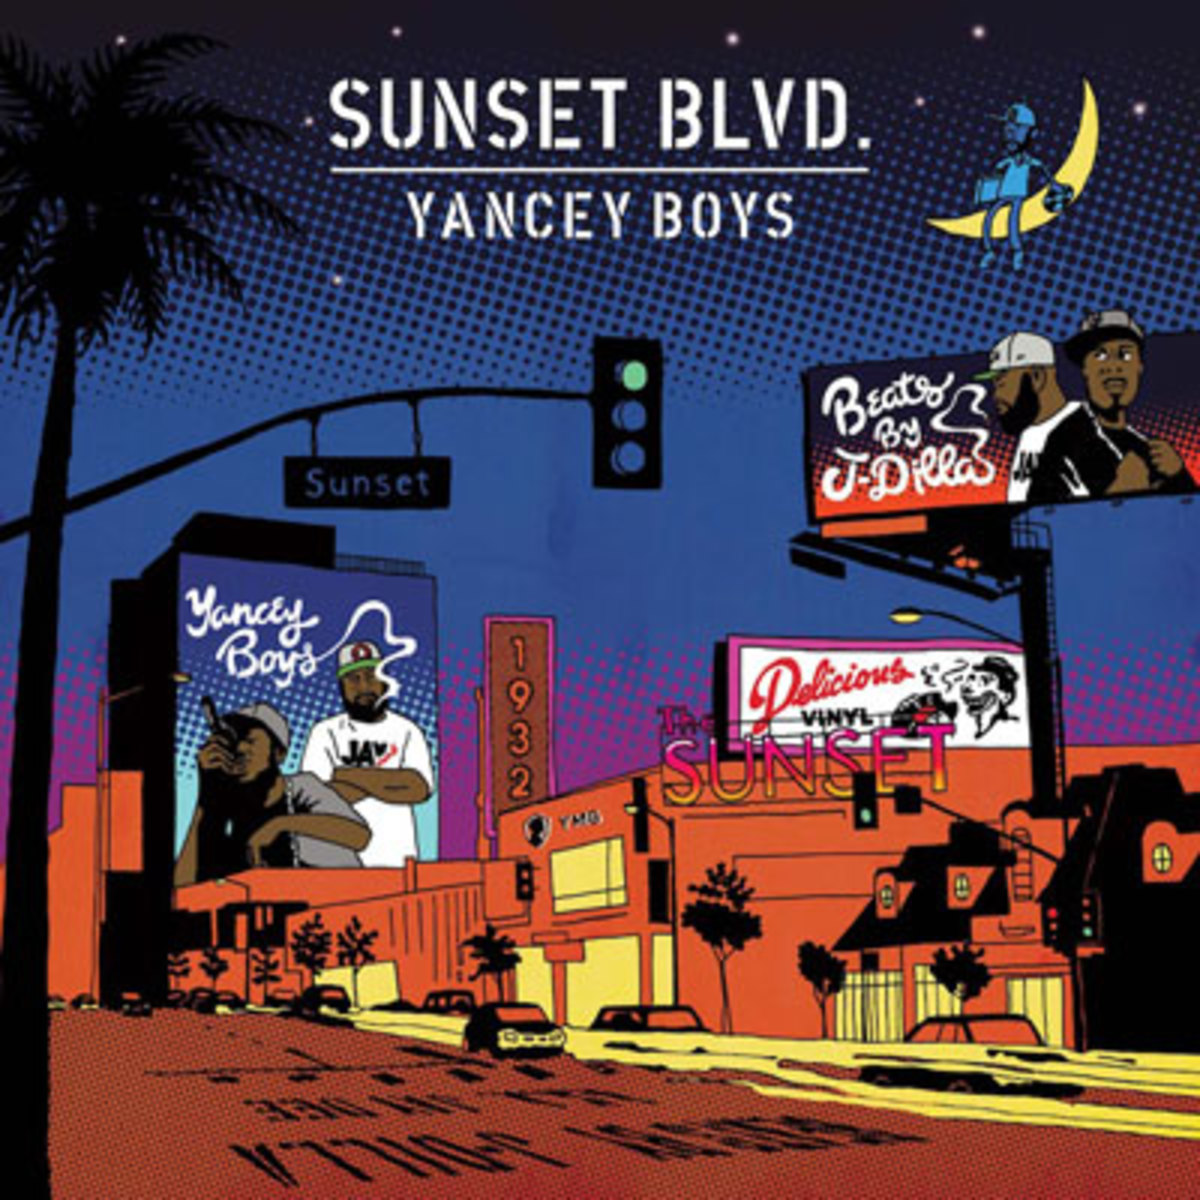 yanceyboys-sunset.jpg